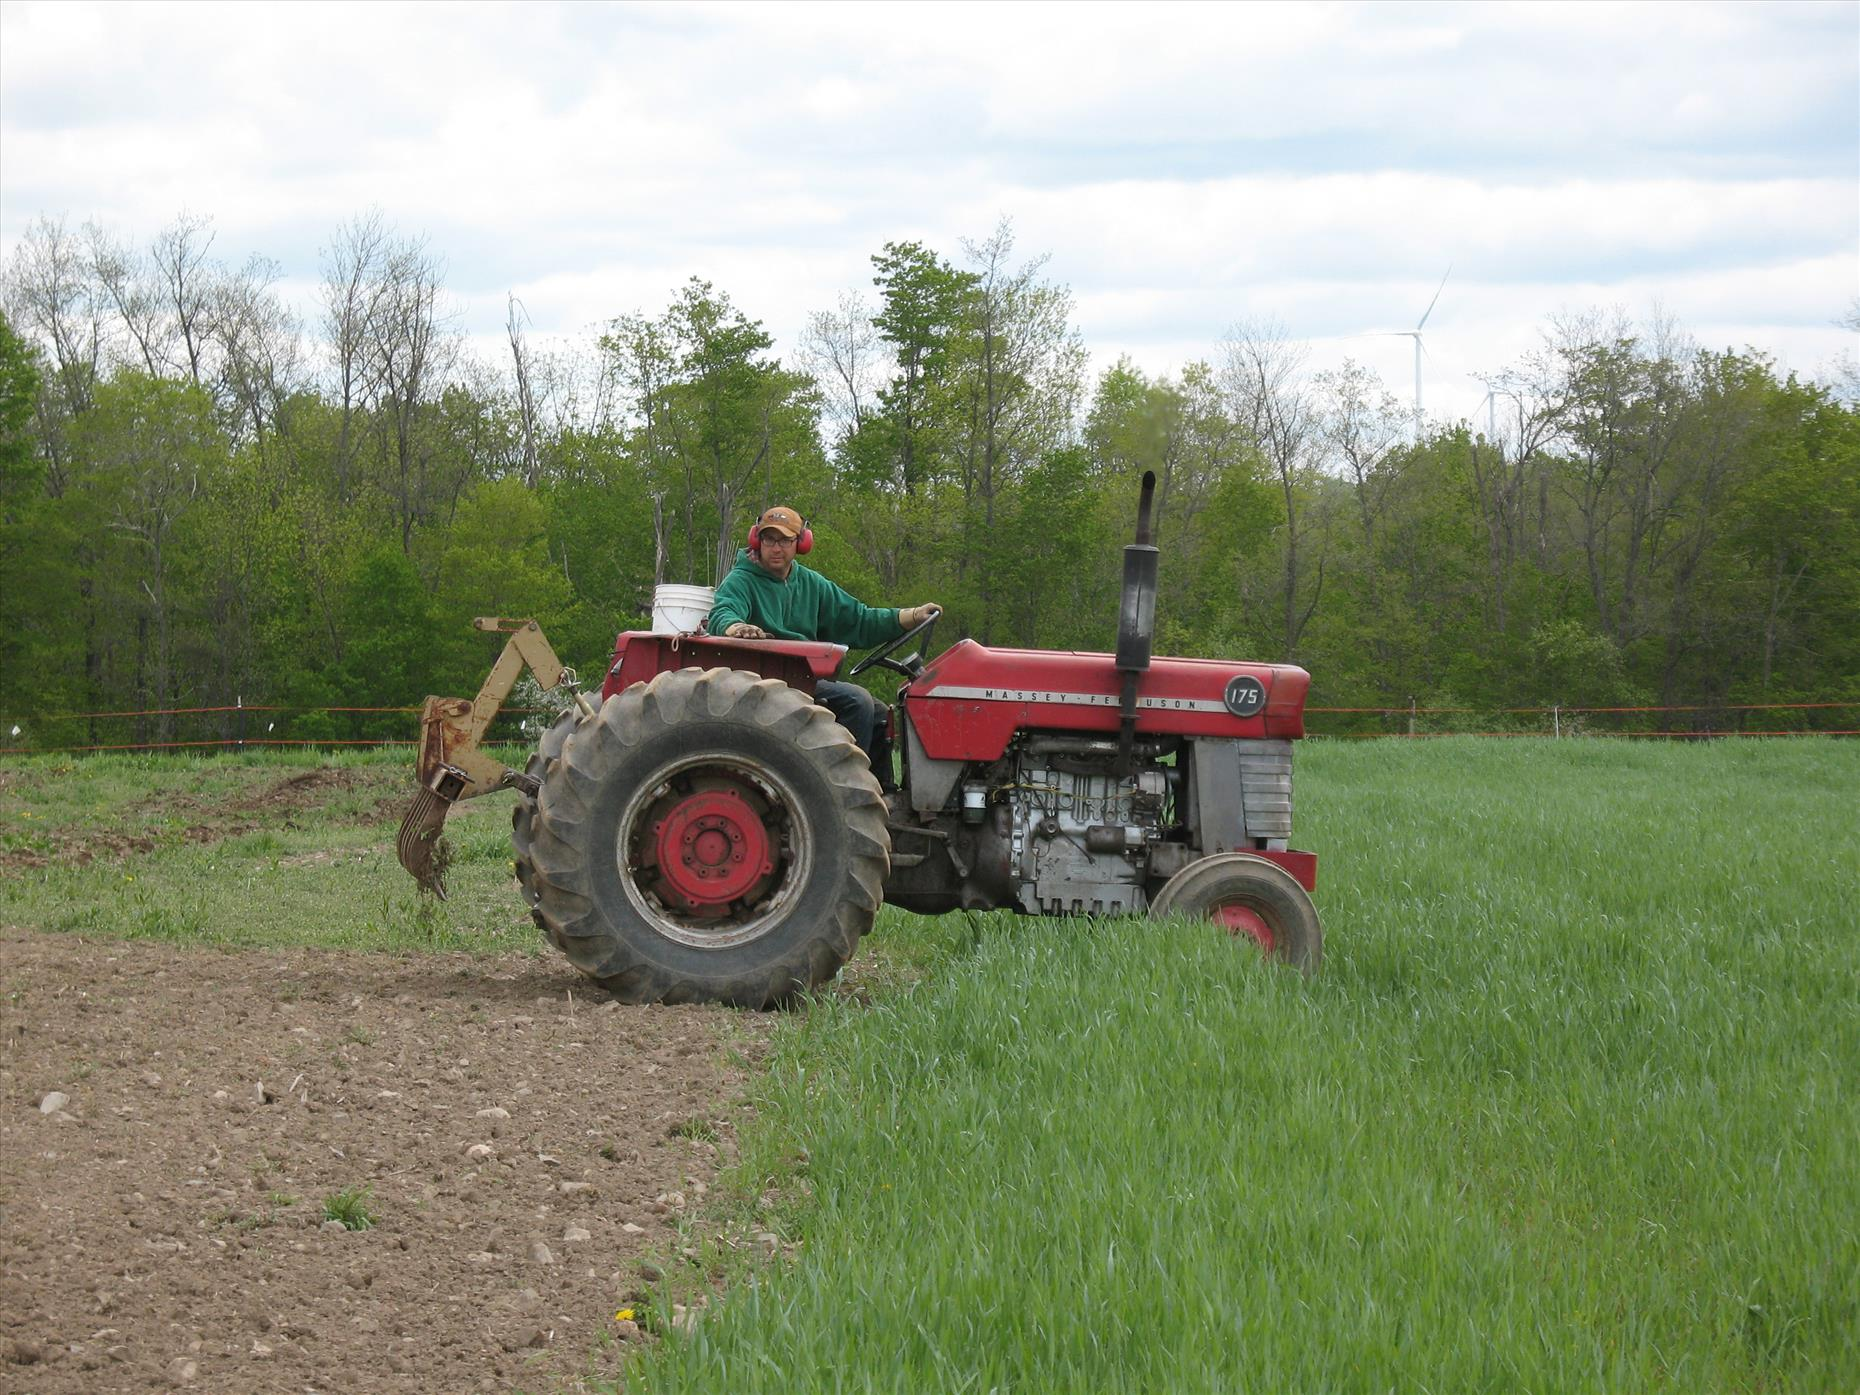 Matt working up the potato field with the scarifier.